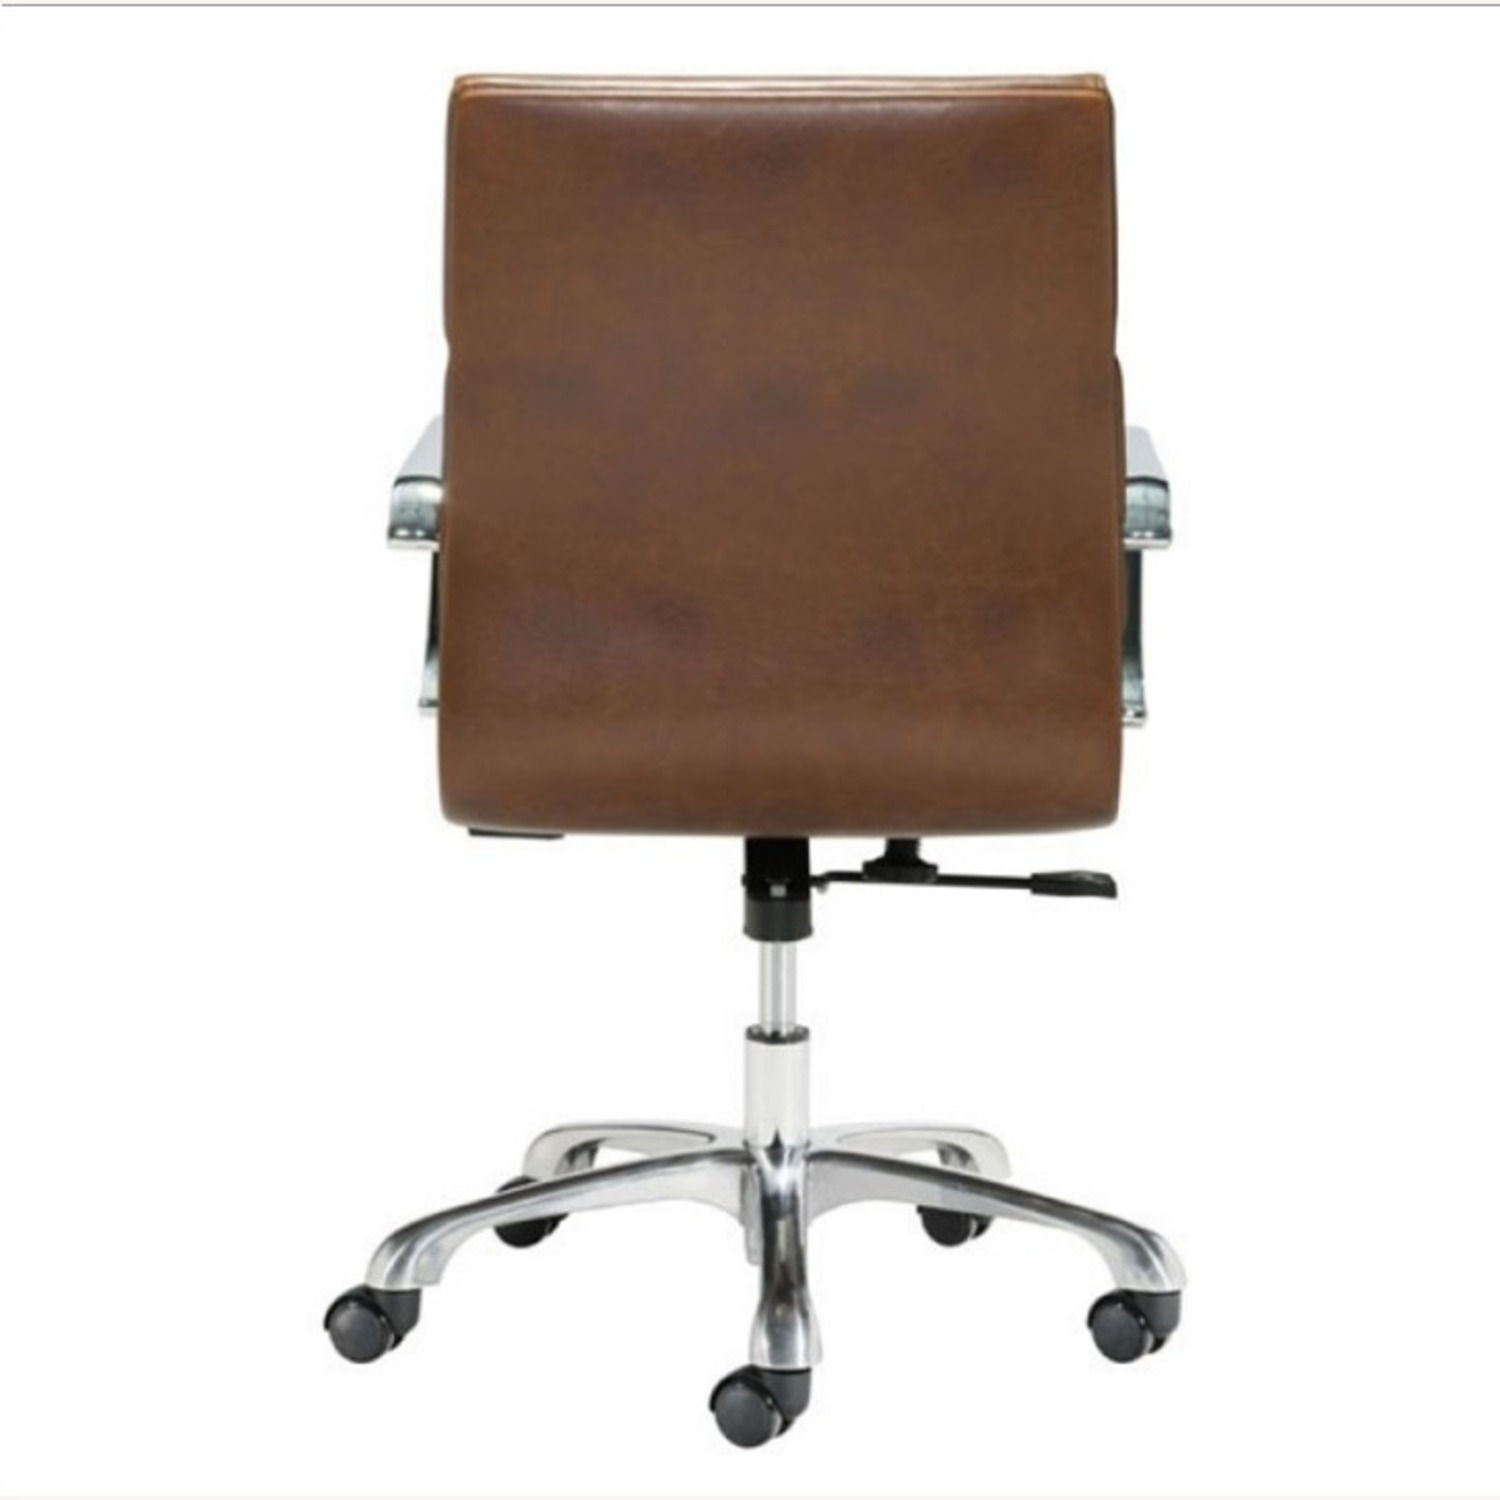 Office Chair In Brown Faux Leather Seat & Back - image-3